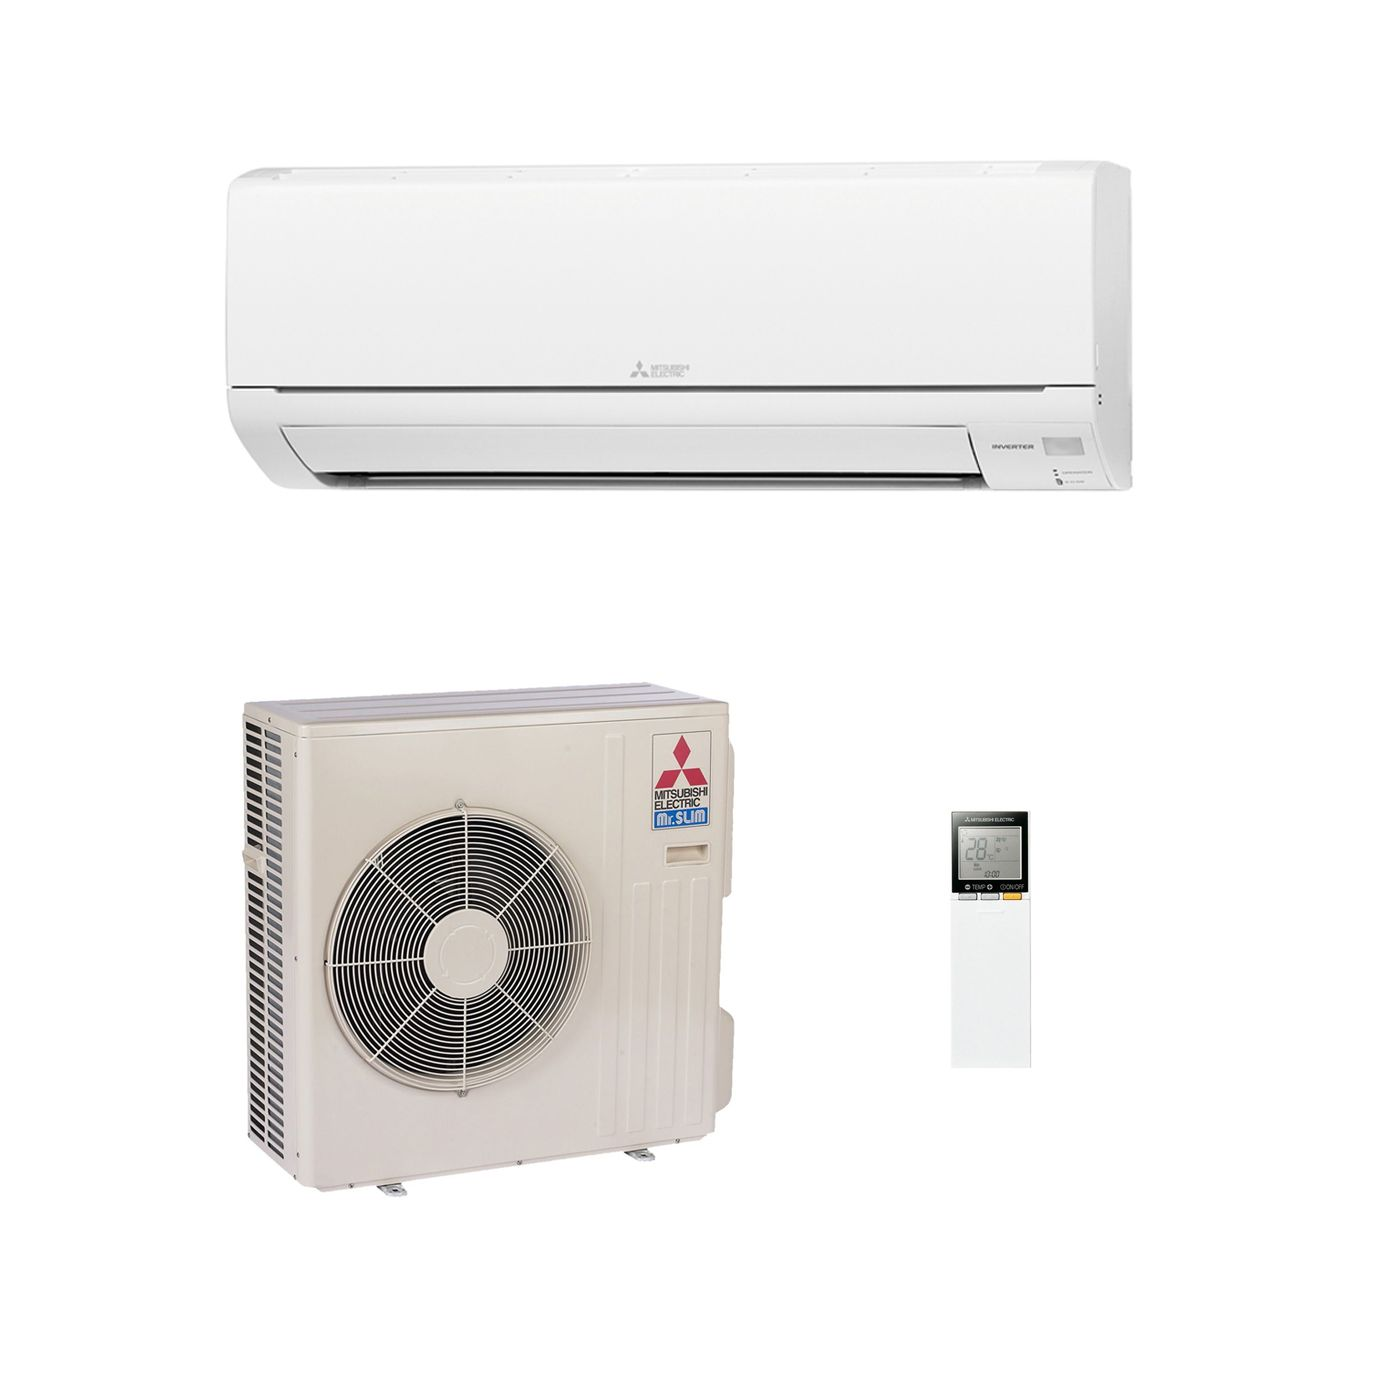 Mitsubishi Electric Air Conditioning MSZ-GF71VE Wall Mounted